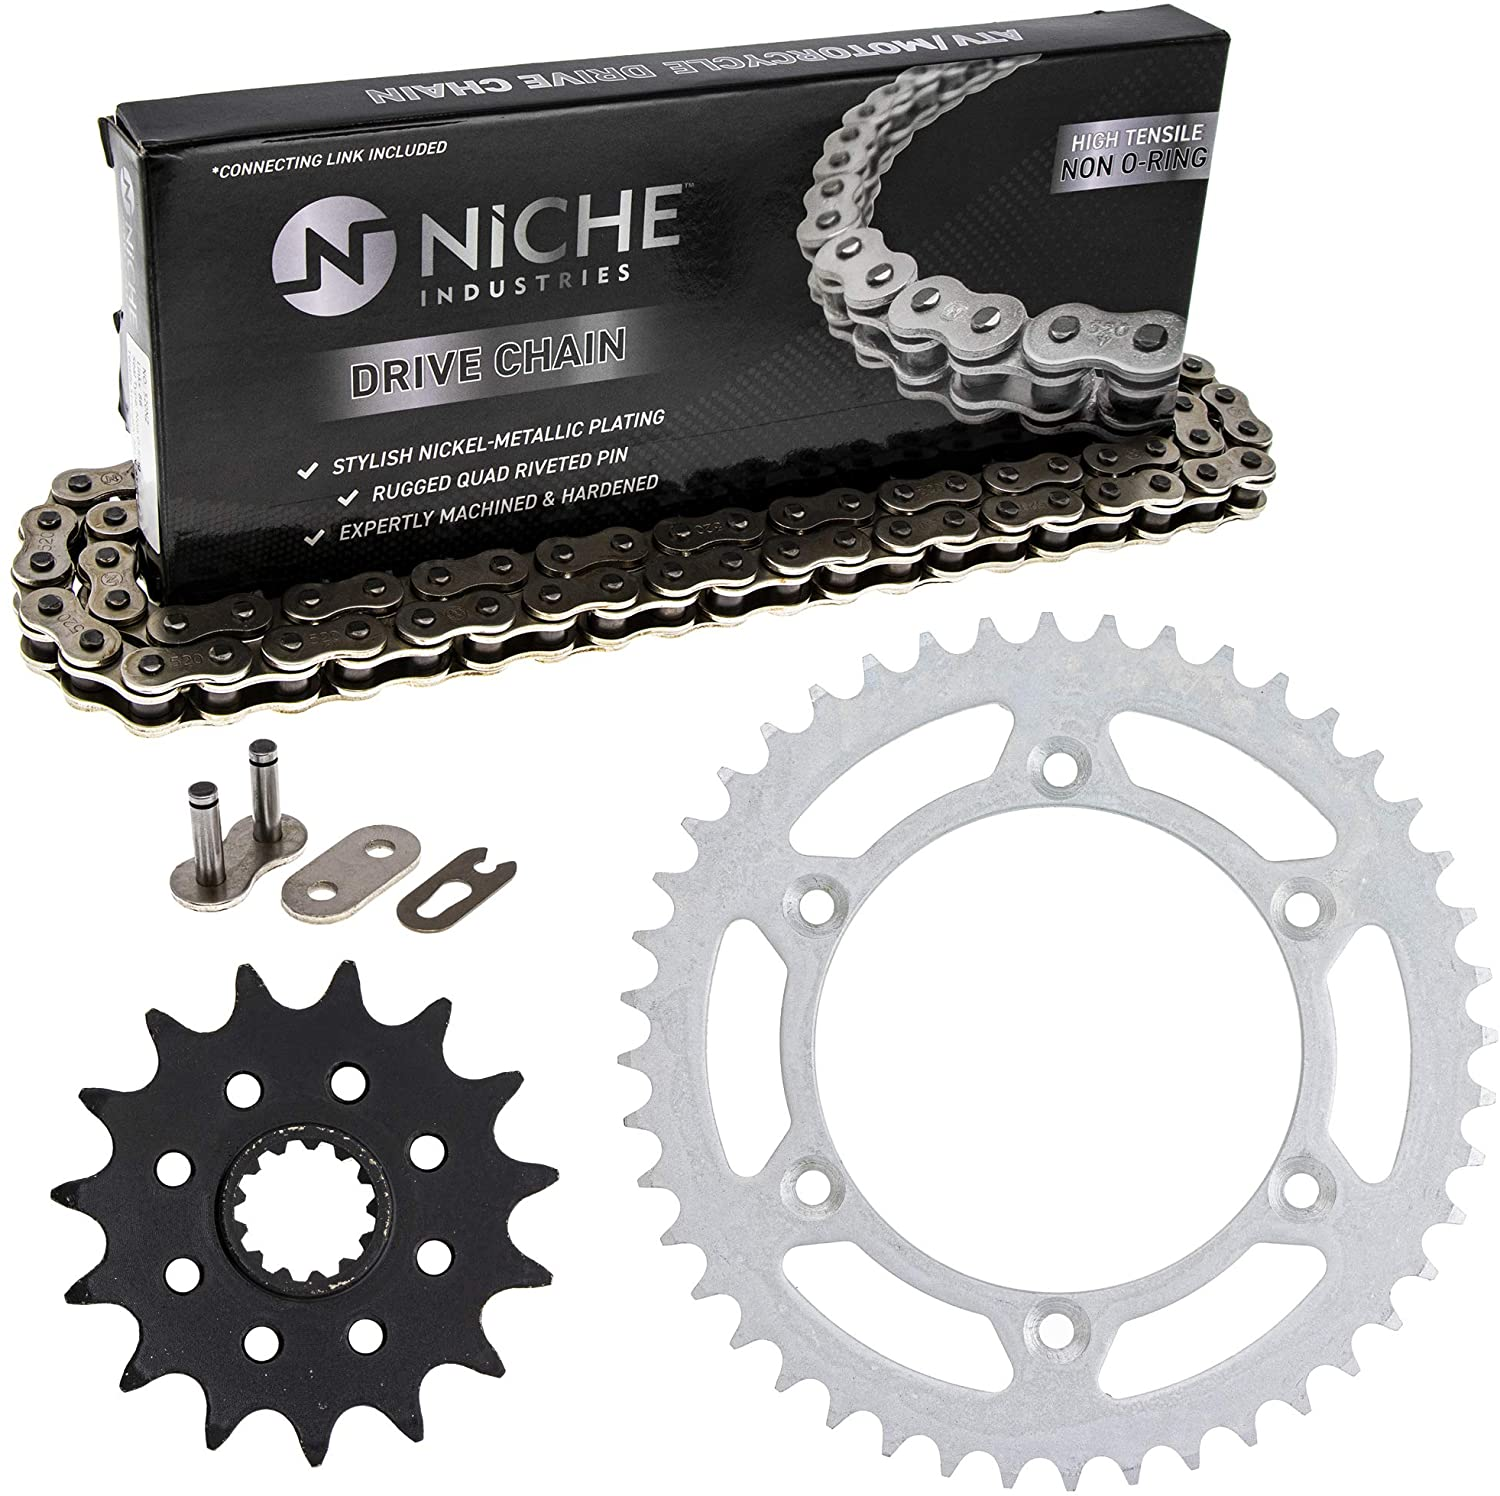 NICHE Drive Sprocket Chain Combo for Suzuki DR350 DR350SE Front 15 Rear 44 Tooth 520NZ Standard 110 Links